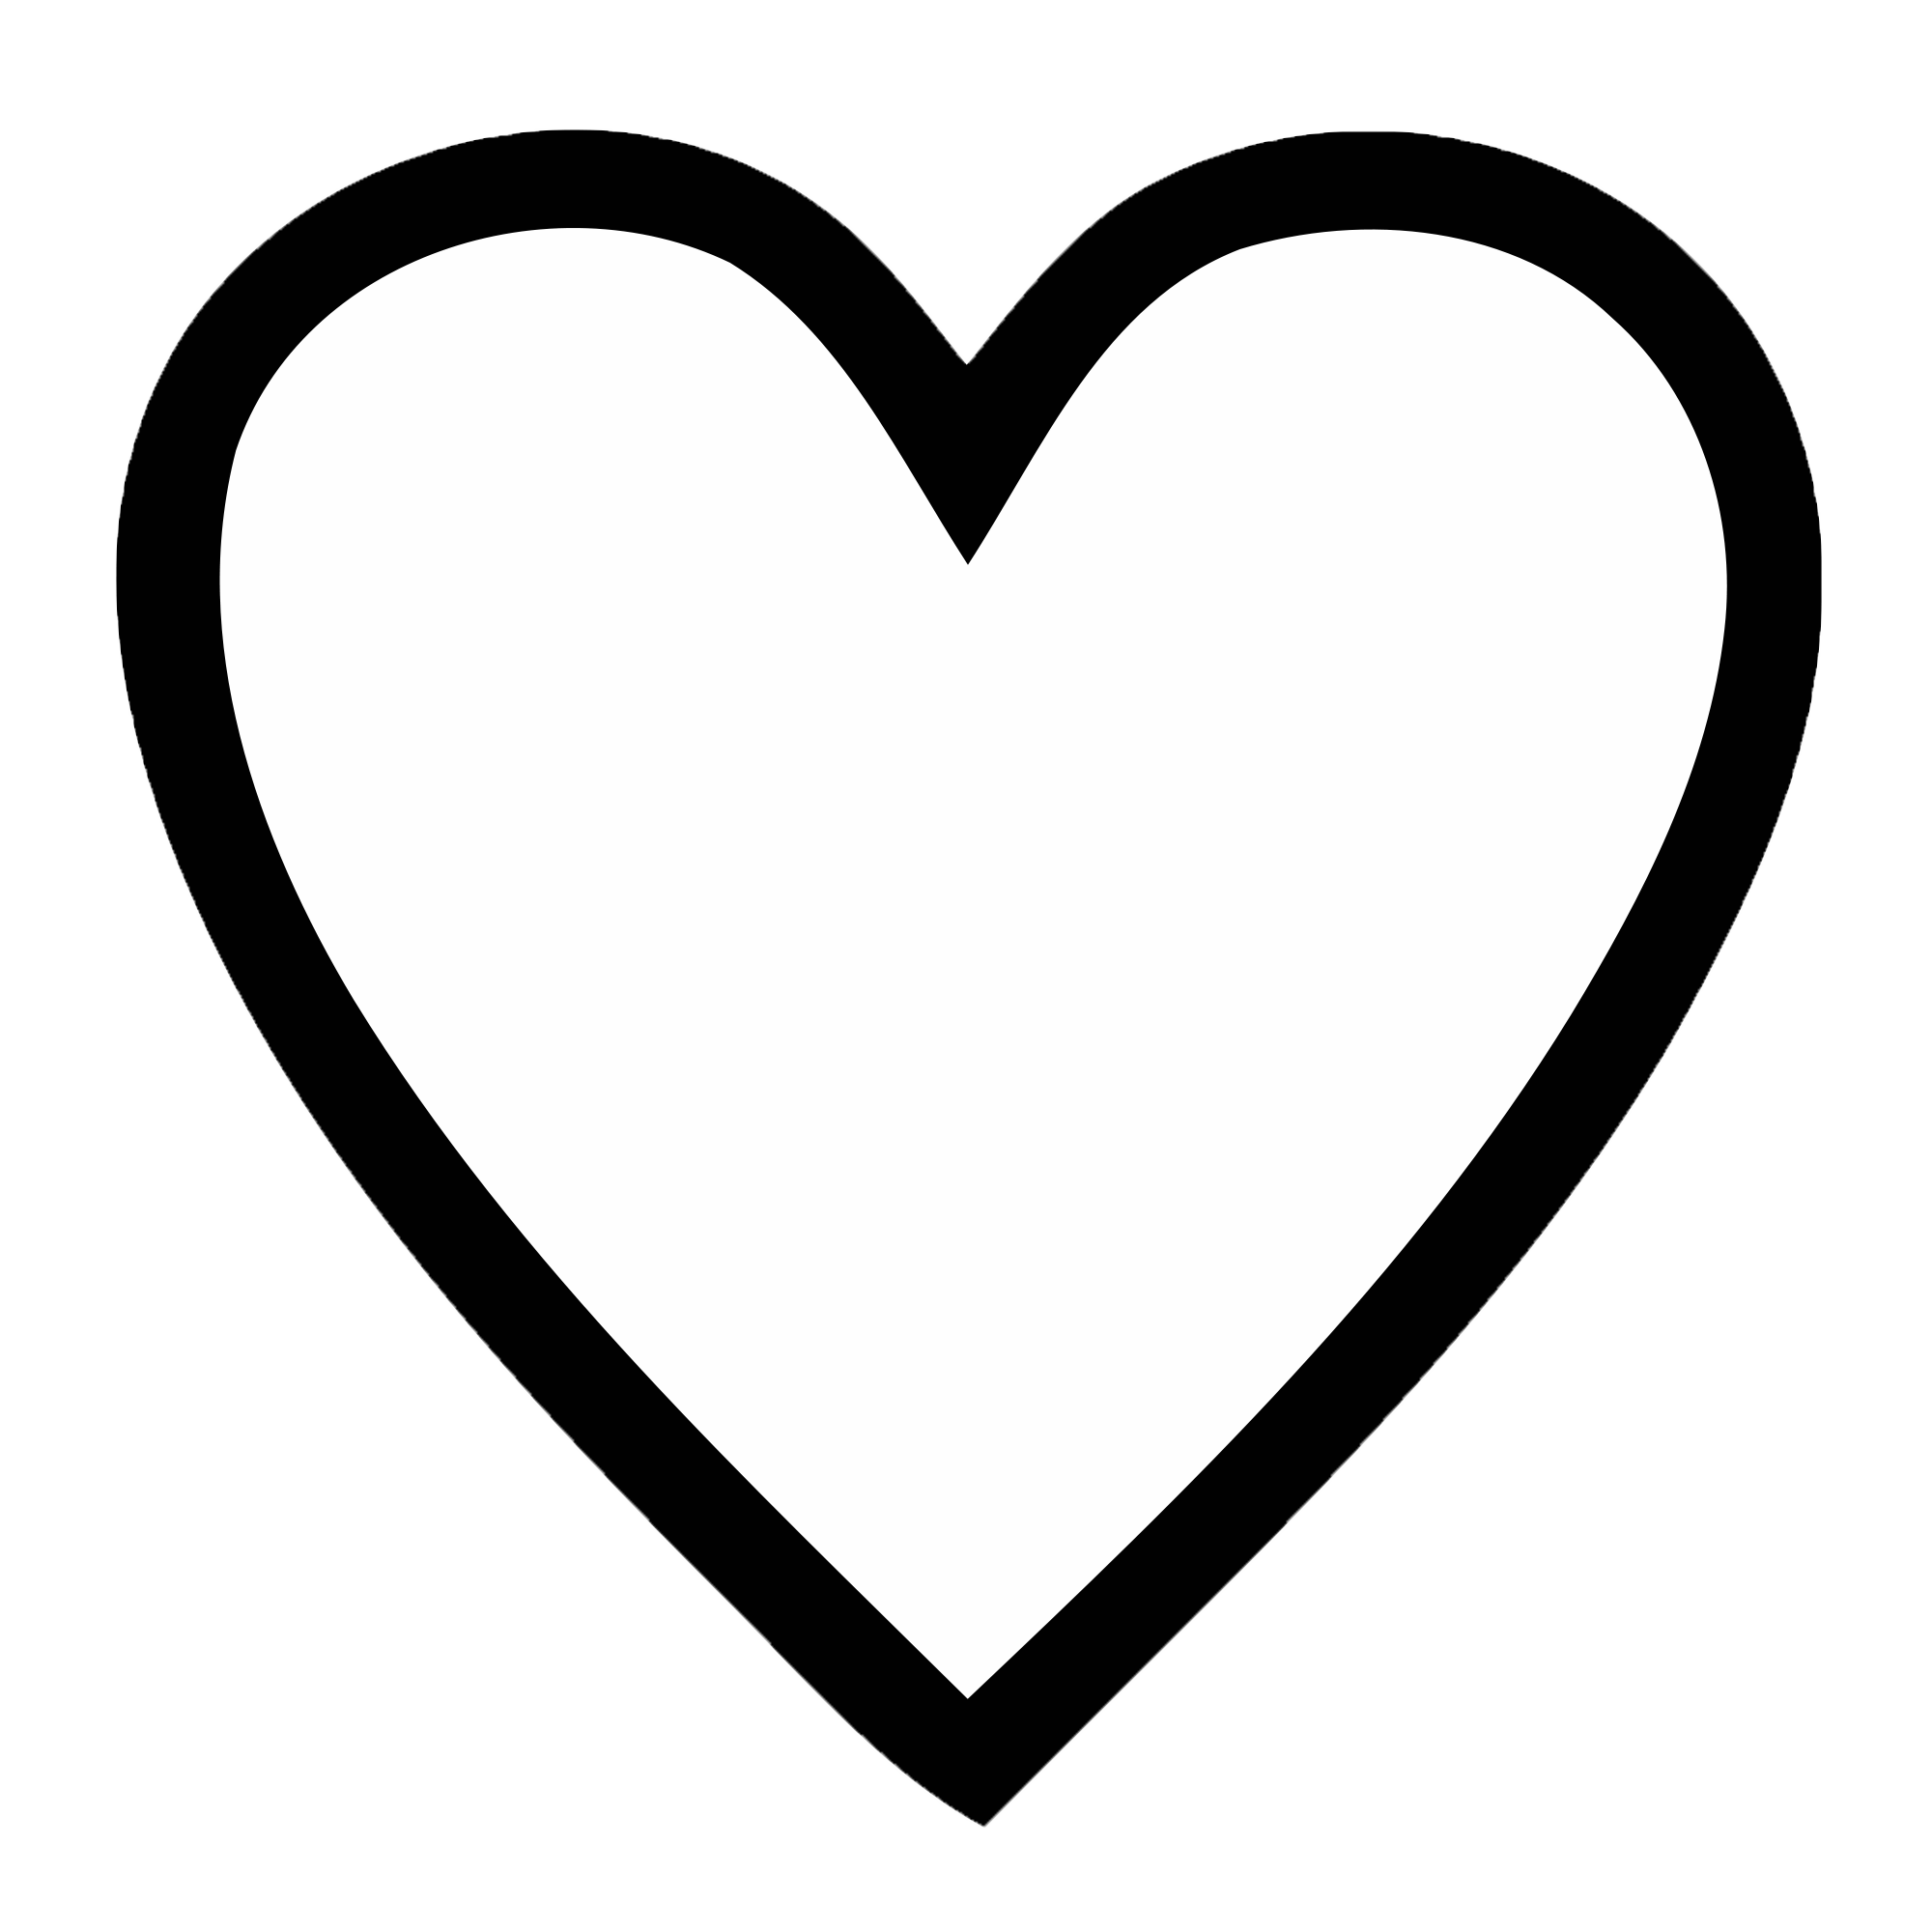 Heart sketch clipart image black and white stock File:Heart-SG2001-transparent.png.png - Wikipedia, the free ... image black and white stock